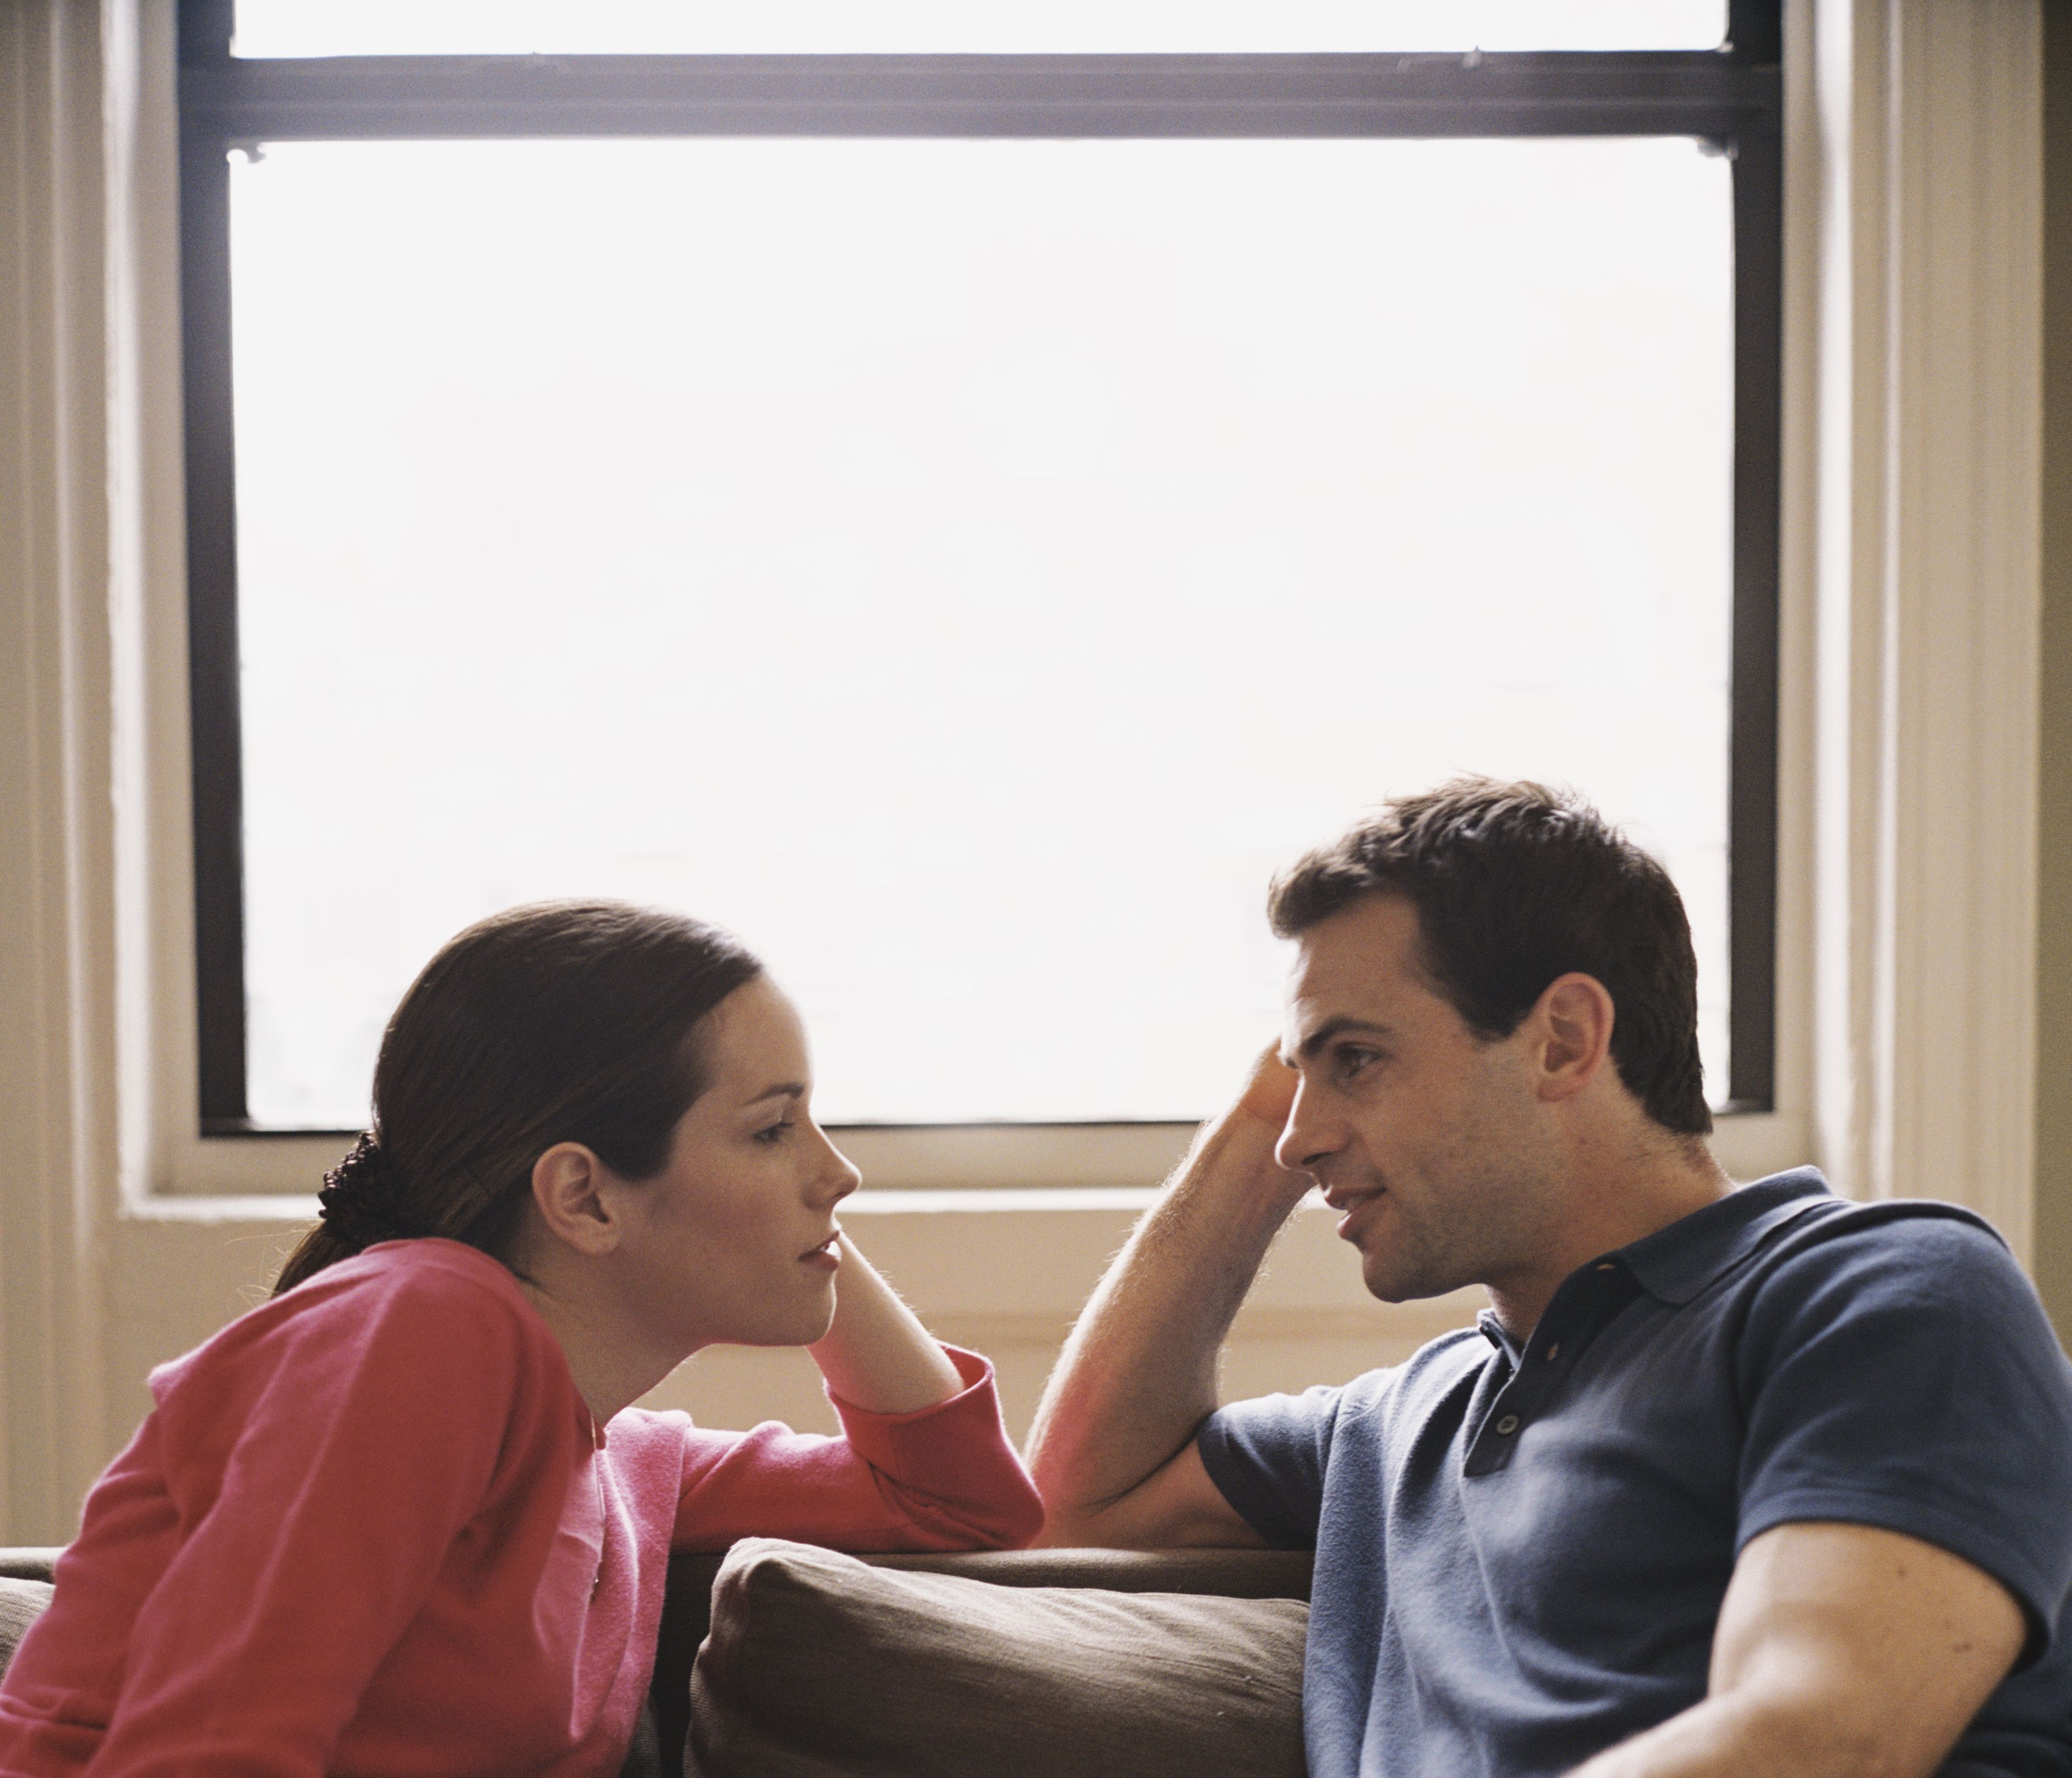 15 Fun Things Couples Should Do To her Right Now